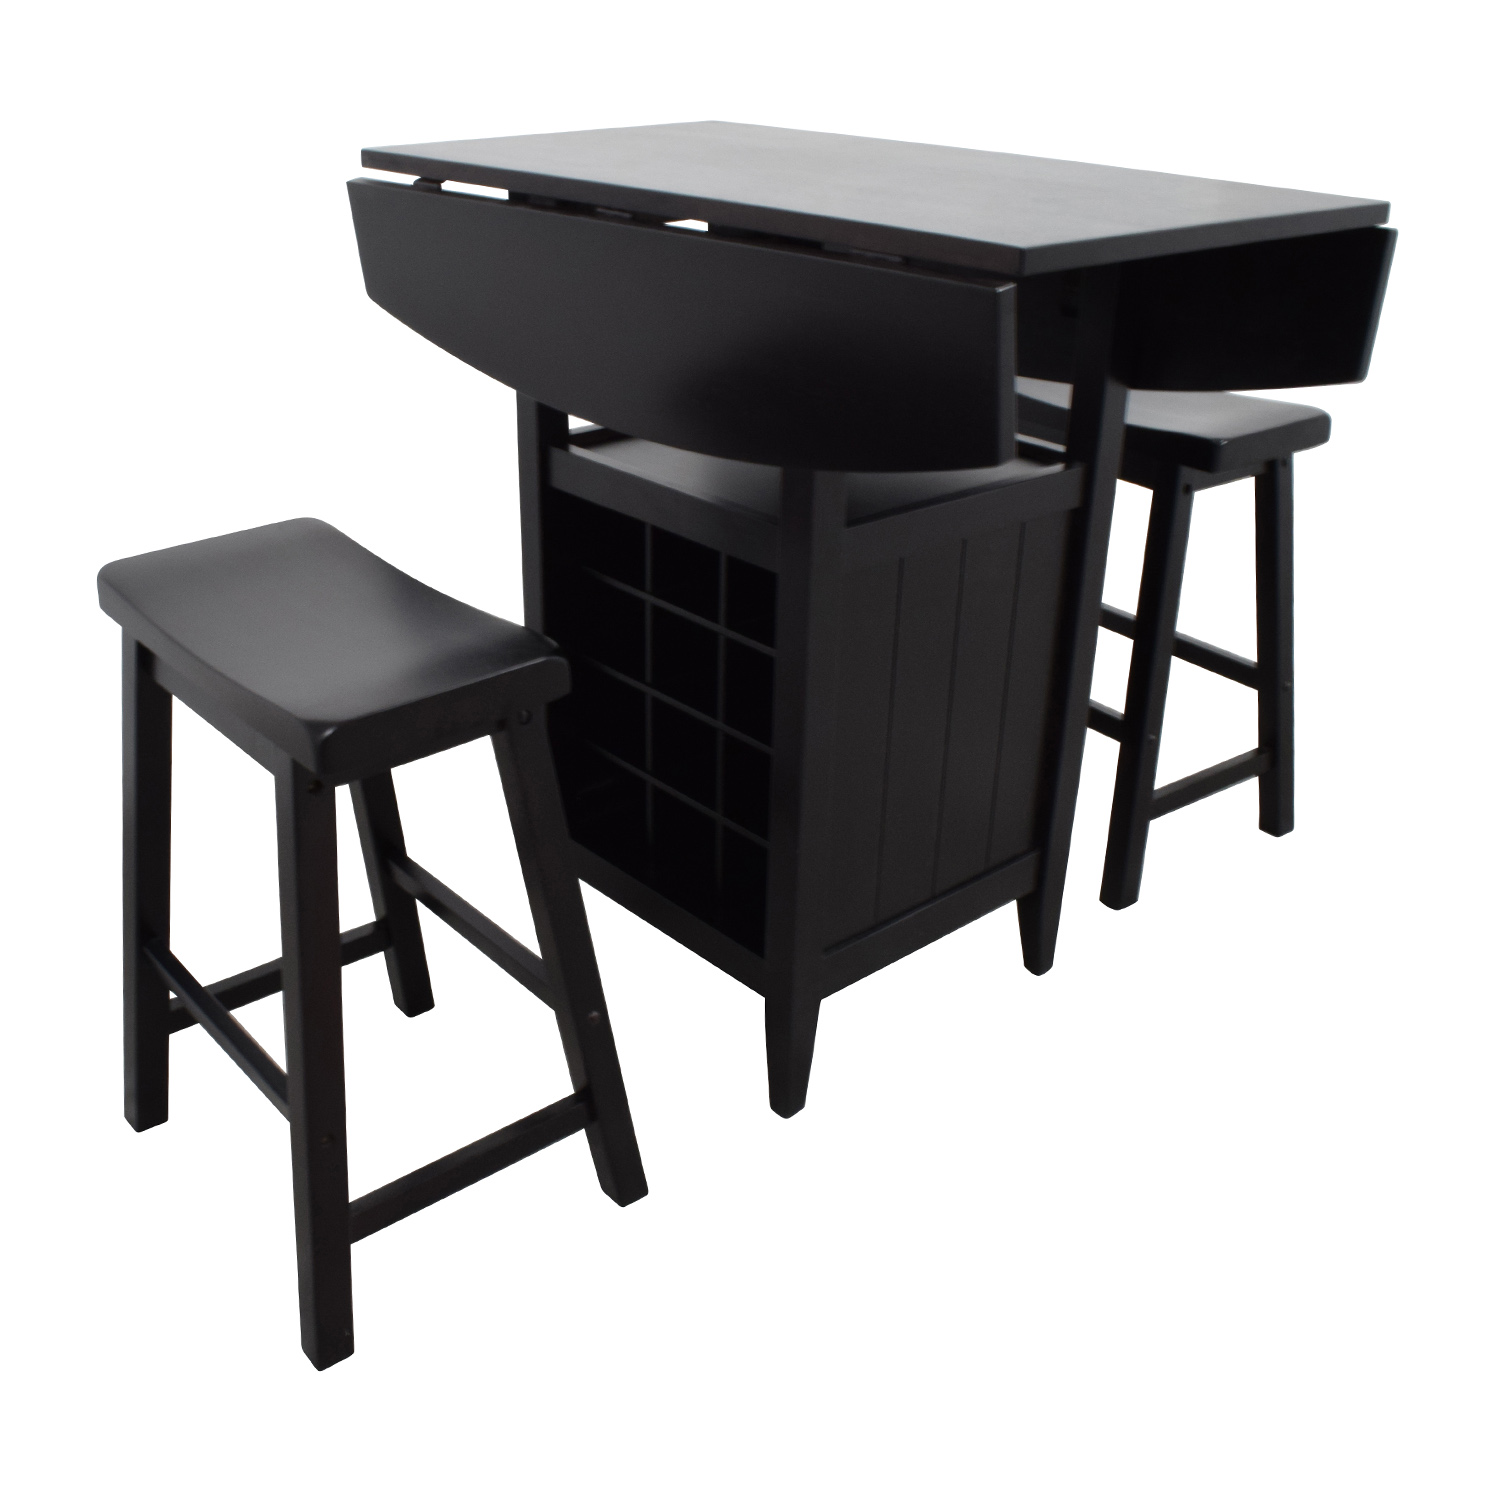 shop Dinette Wood Table with Storage with Two Stools online